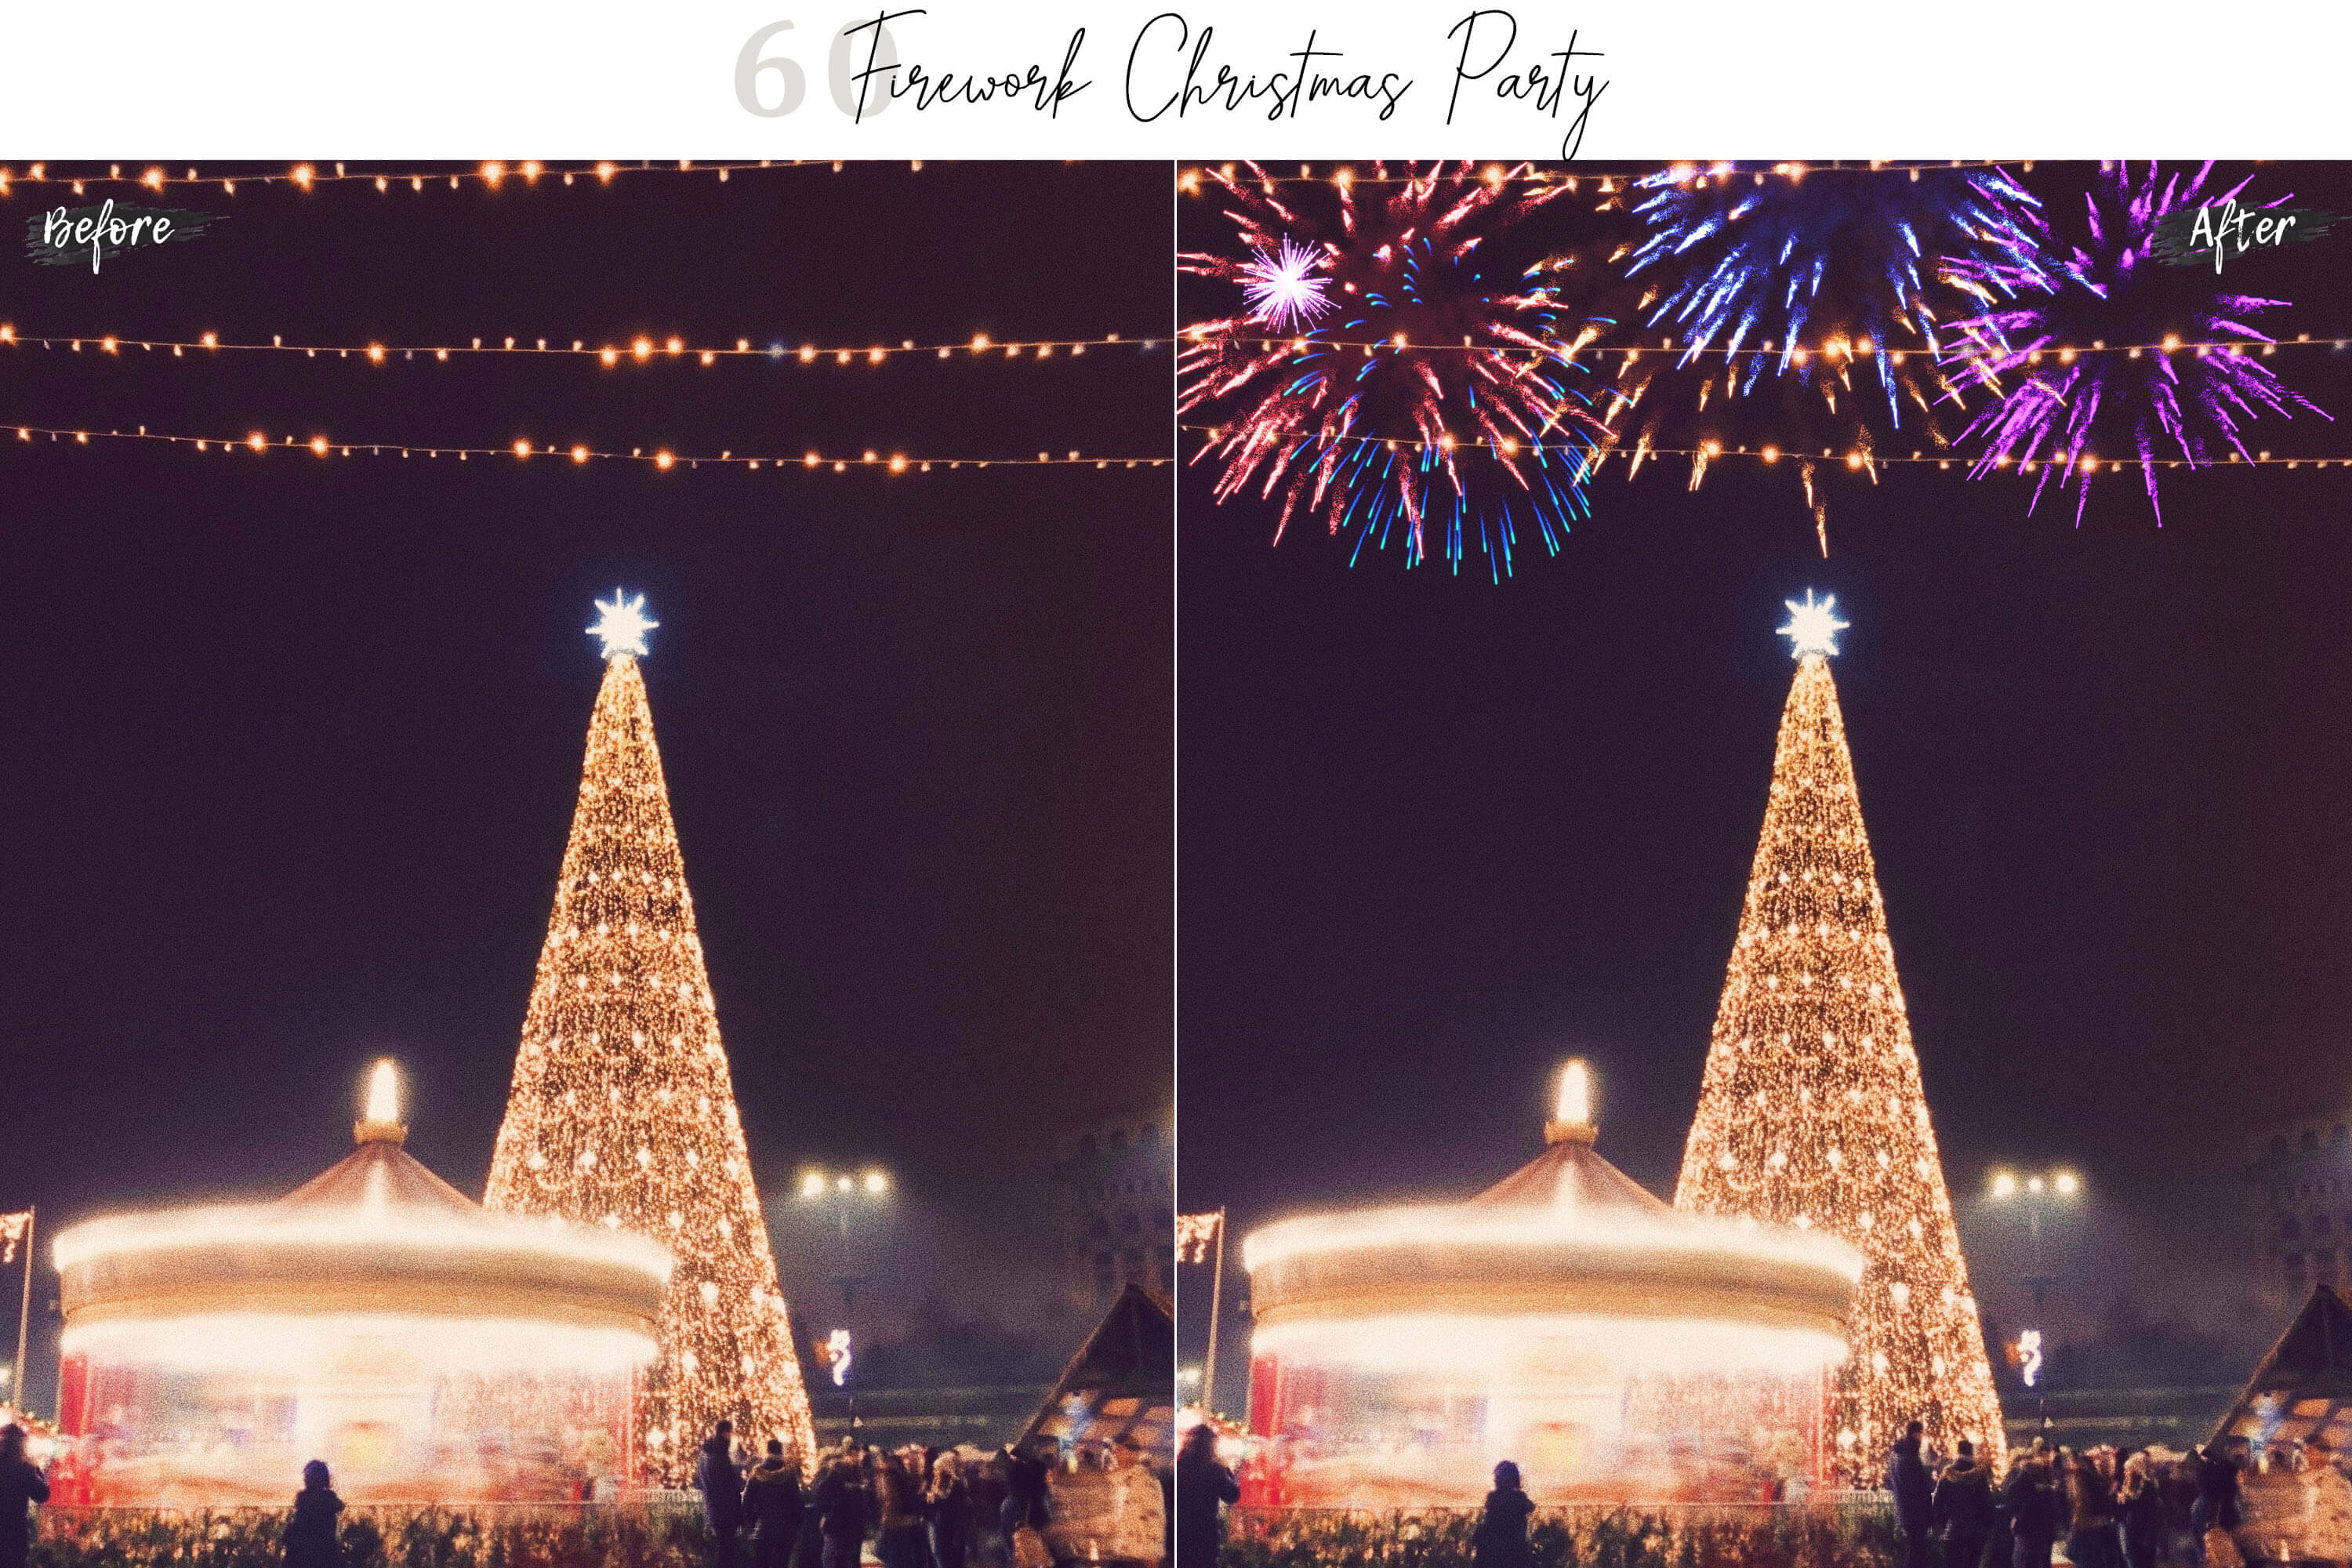 60 Firework Christmas Party Overlays example image 9